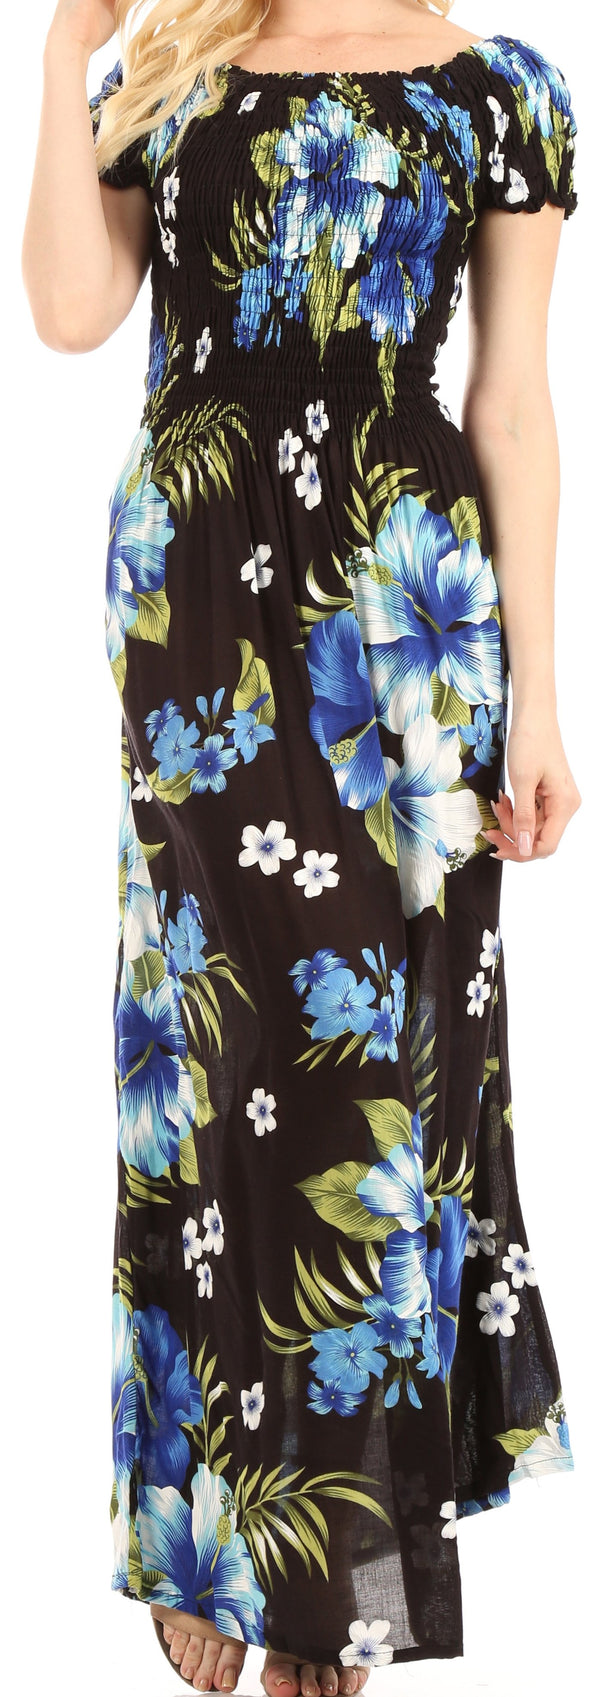 Sakkas Tulay Women's Casual Maxi Floral Print Off Shoulder Dress Short Sleeve Nice#color_B-Blue